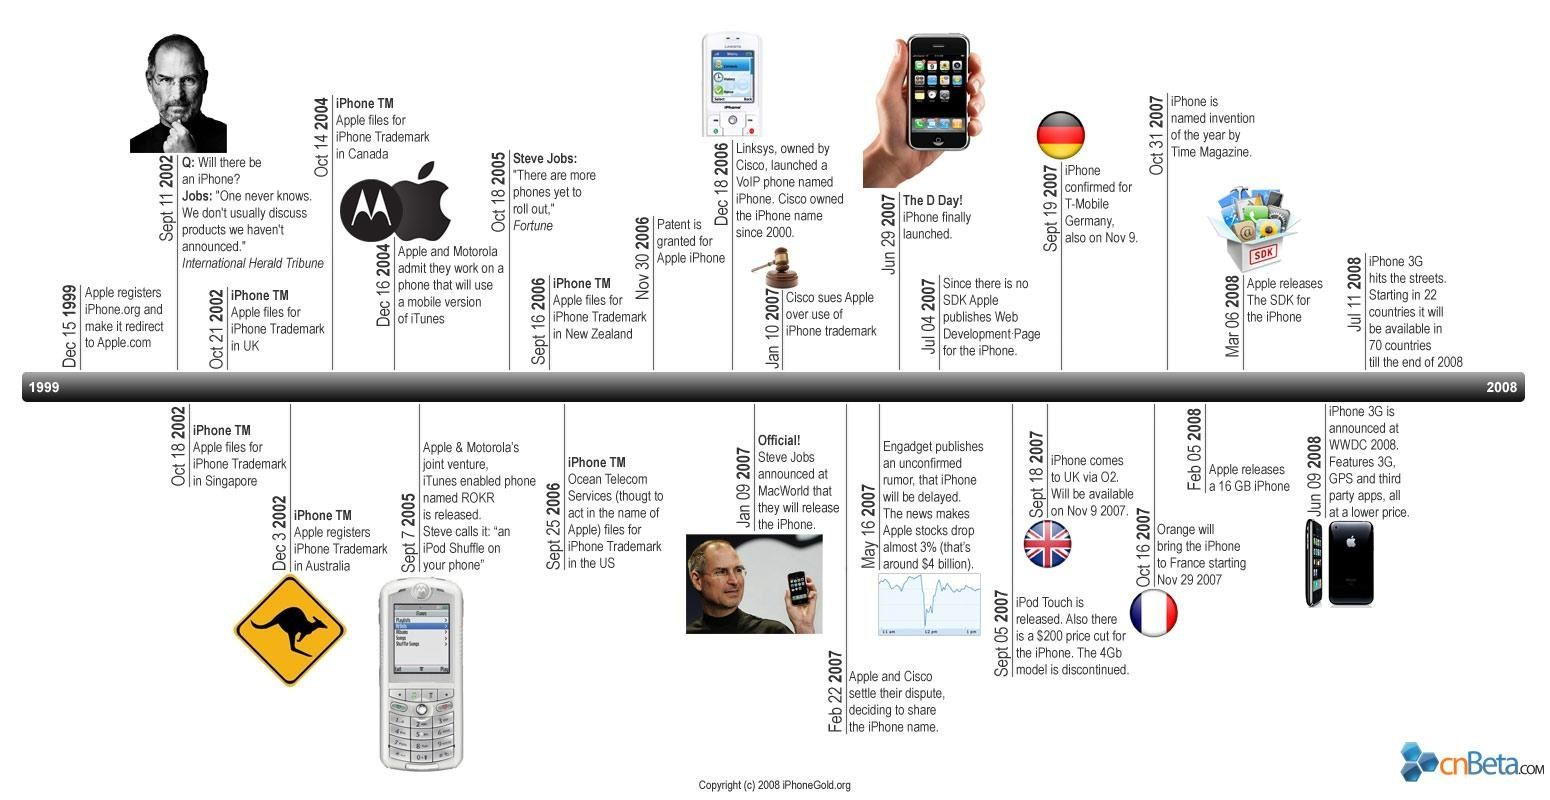 The iPhone Timeline via cnBetacom The History of Apple